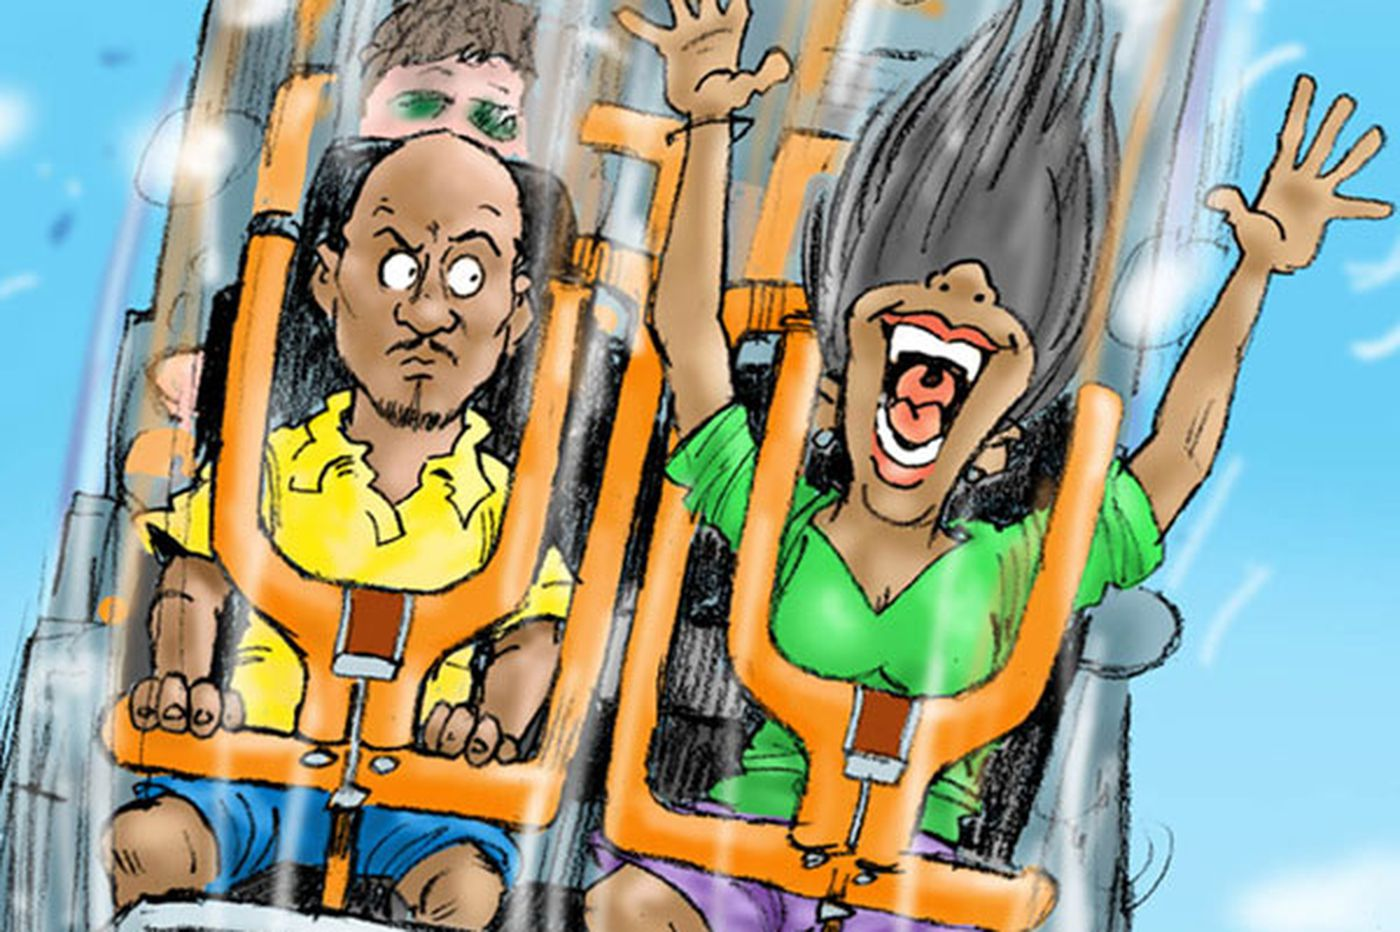 Face it: Life's a roller coaster, sooner or later